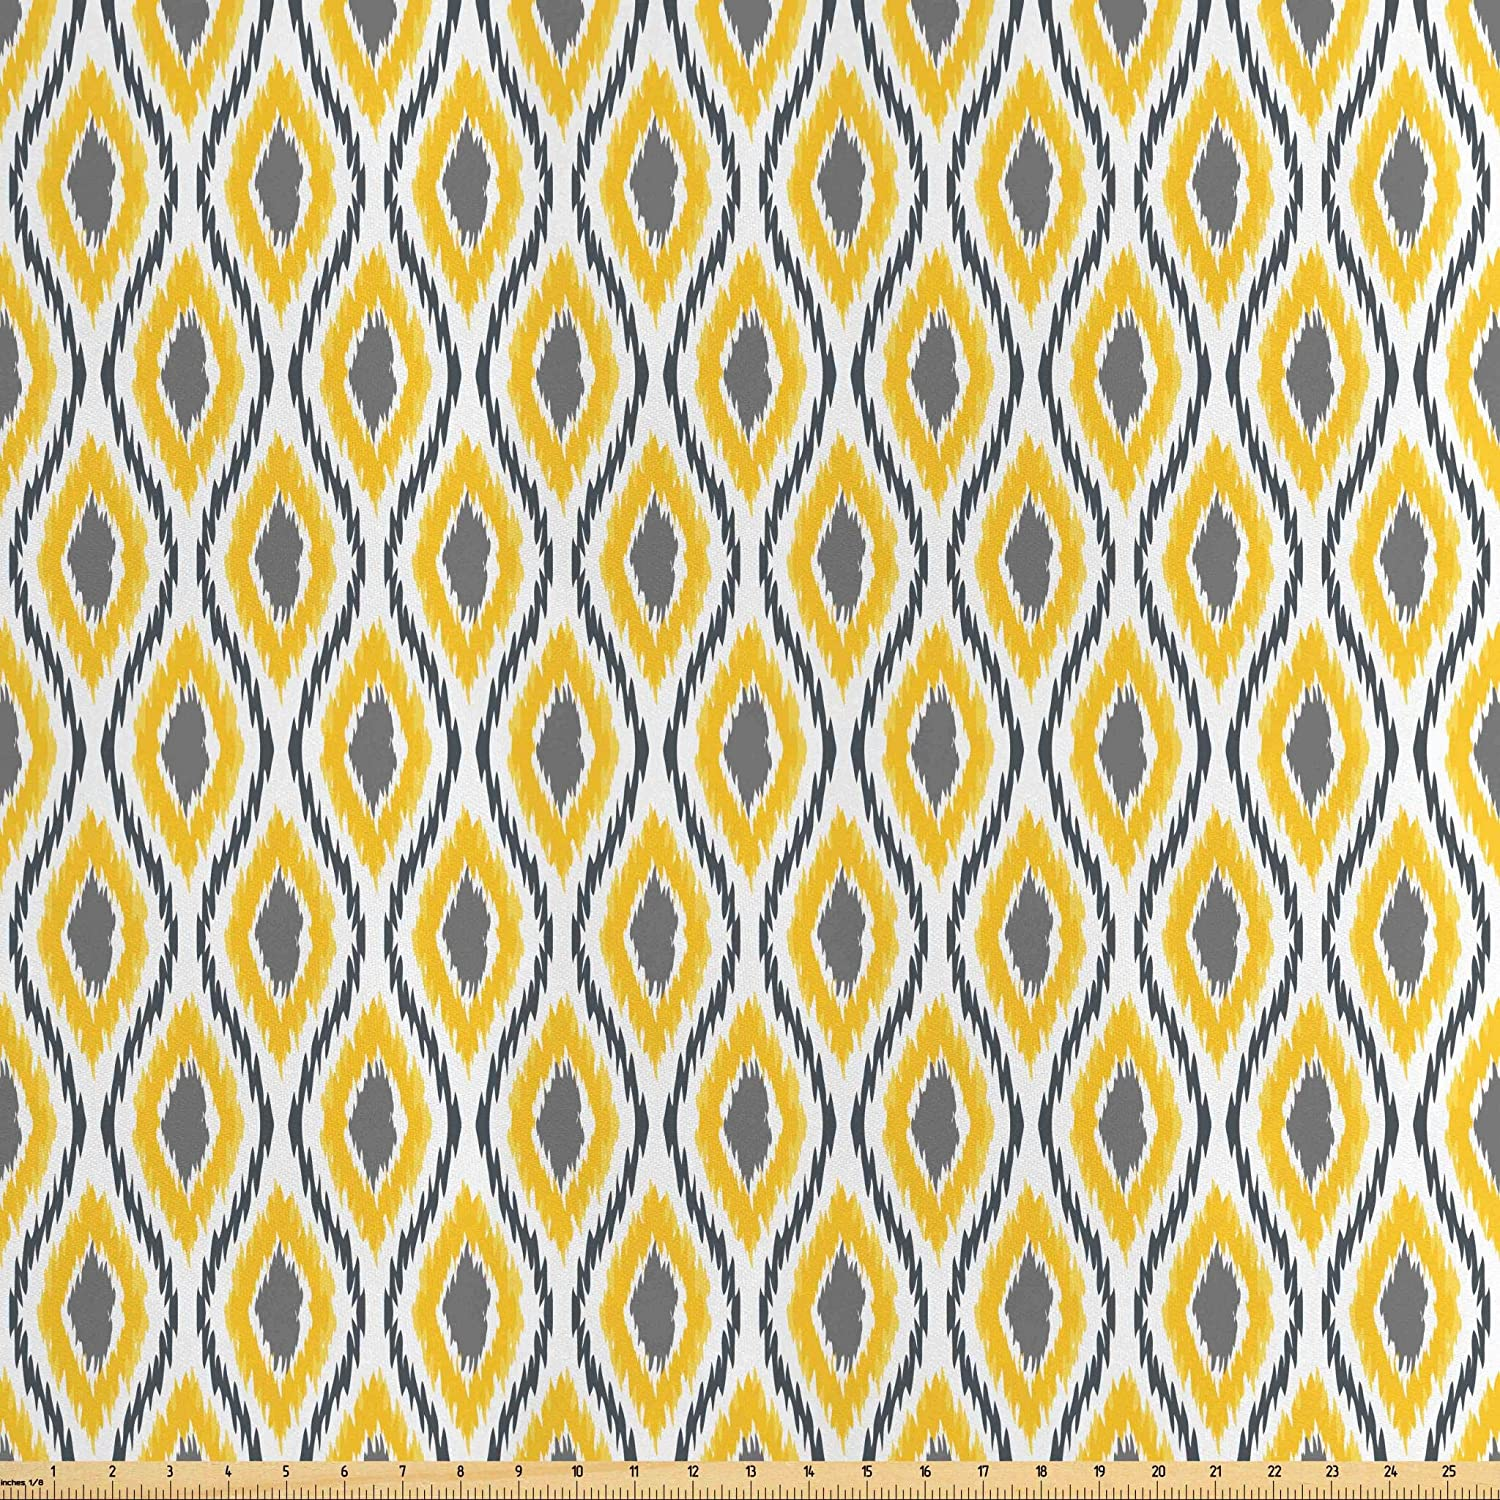 Lunarable Ikat Fabric by The Yard, Oval Double Zigzag Ikat Motifs Exotic Japanese Culture Design, Decorative Satin Fabric for Home Textiles and Crafts, 1 Yard, Grey Yellow White